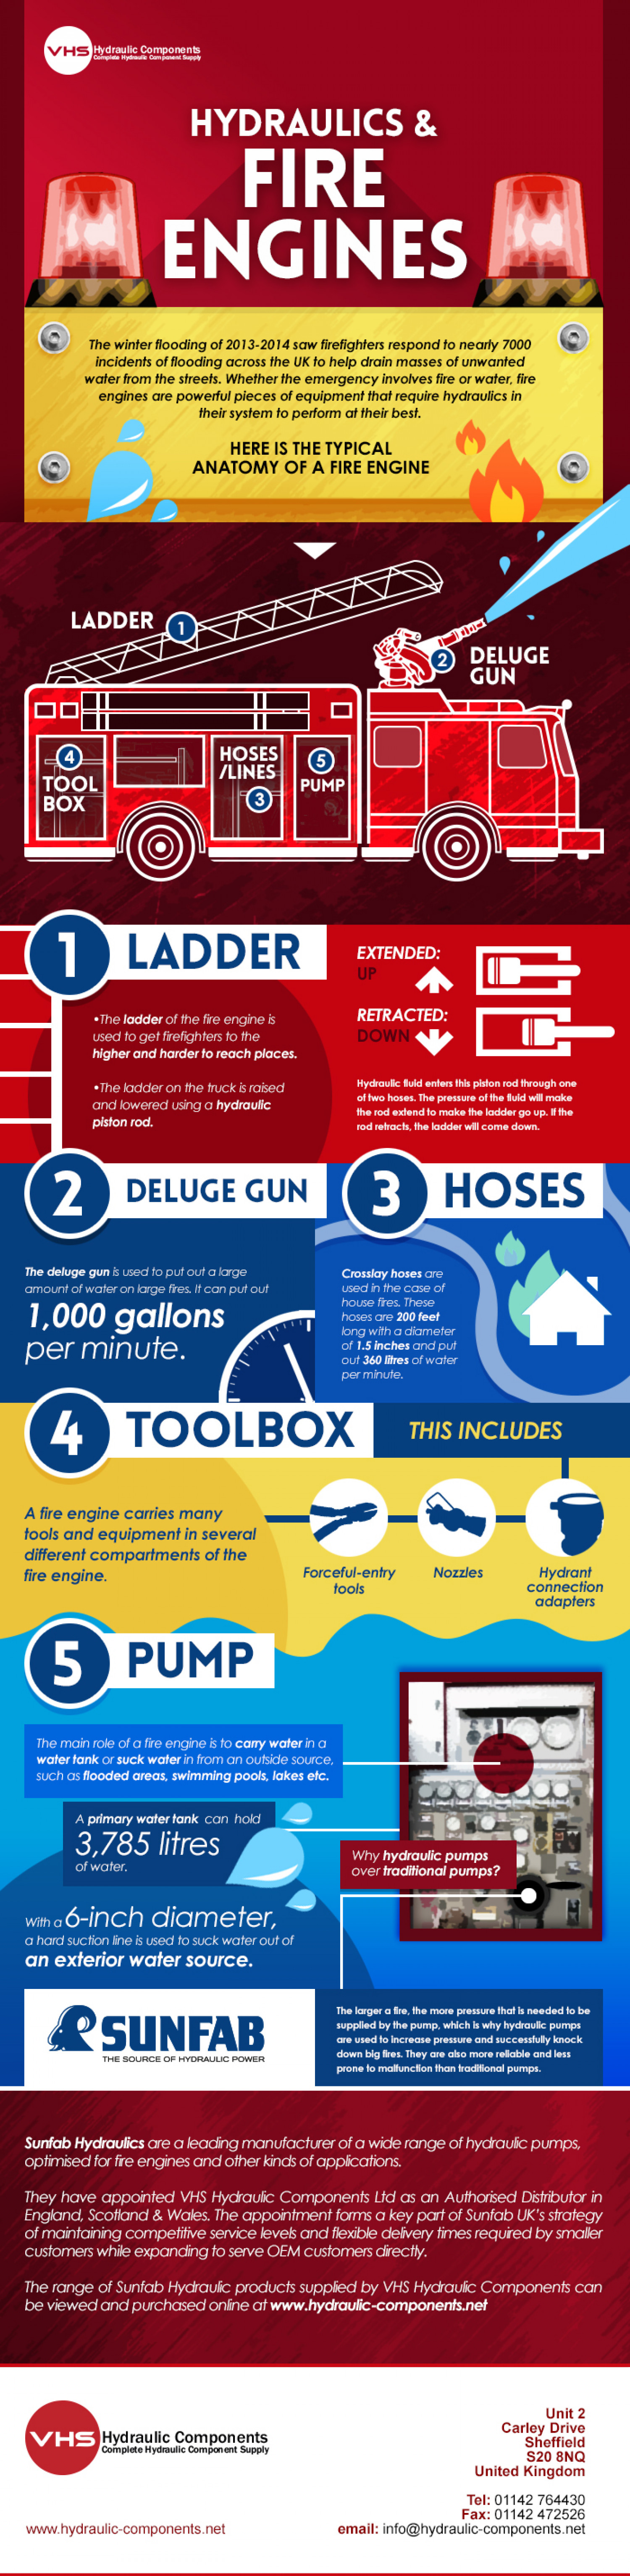 Hydraulics & Fire Engines Infographic